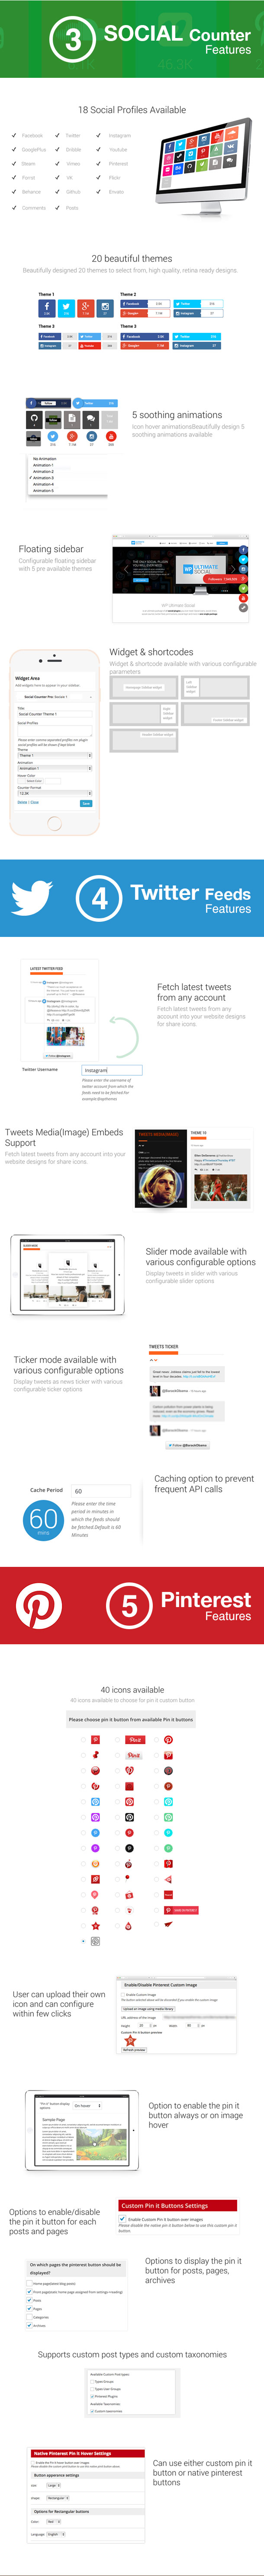 WP Ultimate Social - All in One Social Features' Collection WordPress Plugin - 2